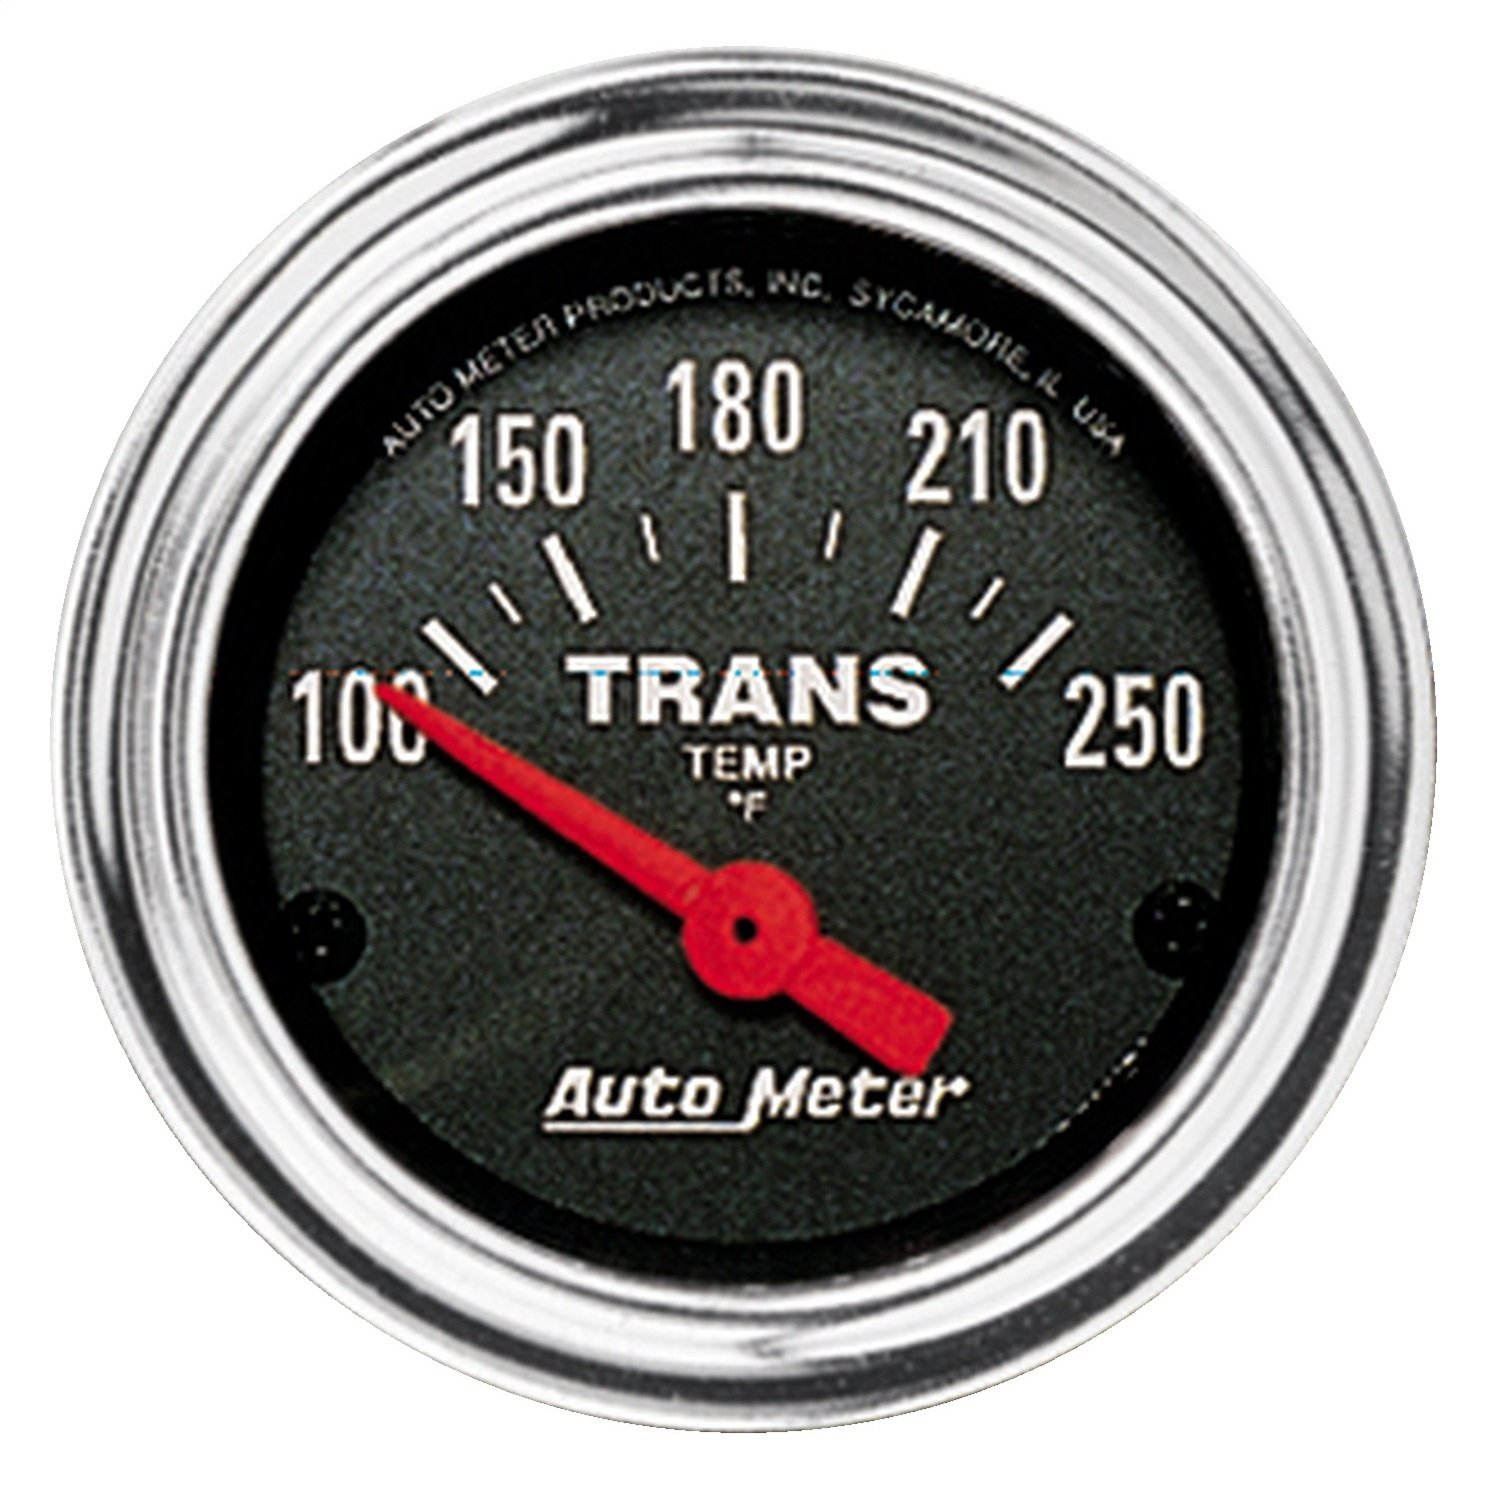 Auto Meter 2552 Traditional Chrome Electric Transmission Temperature Gauge by AUTO METER